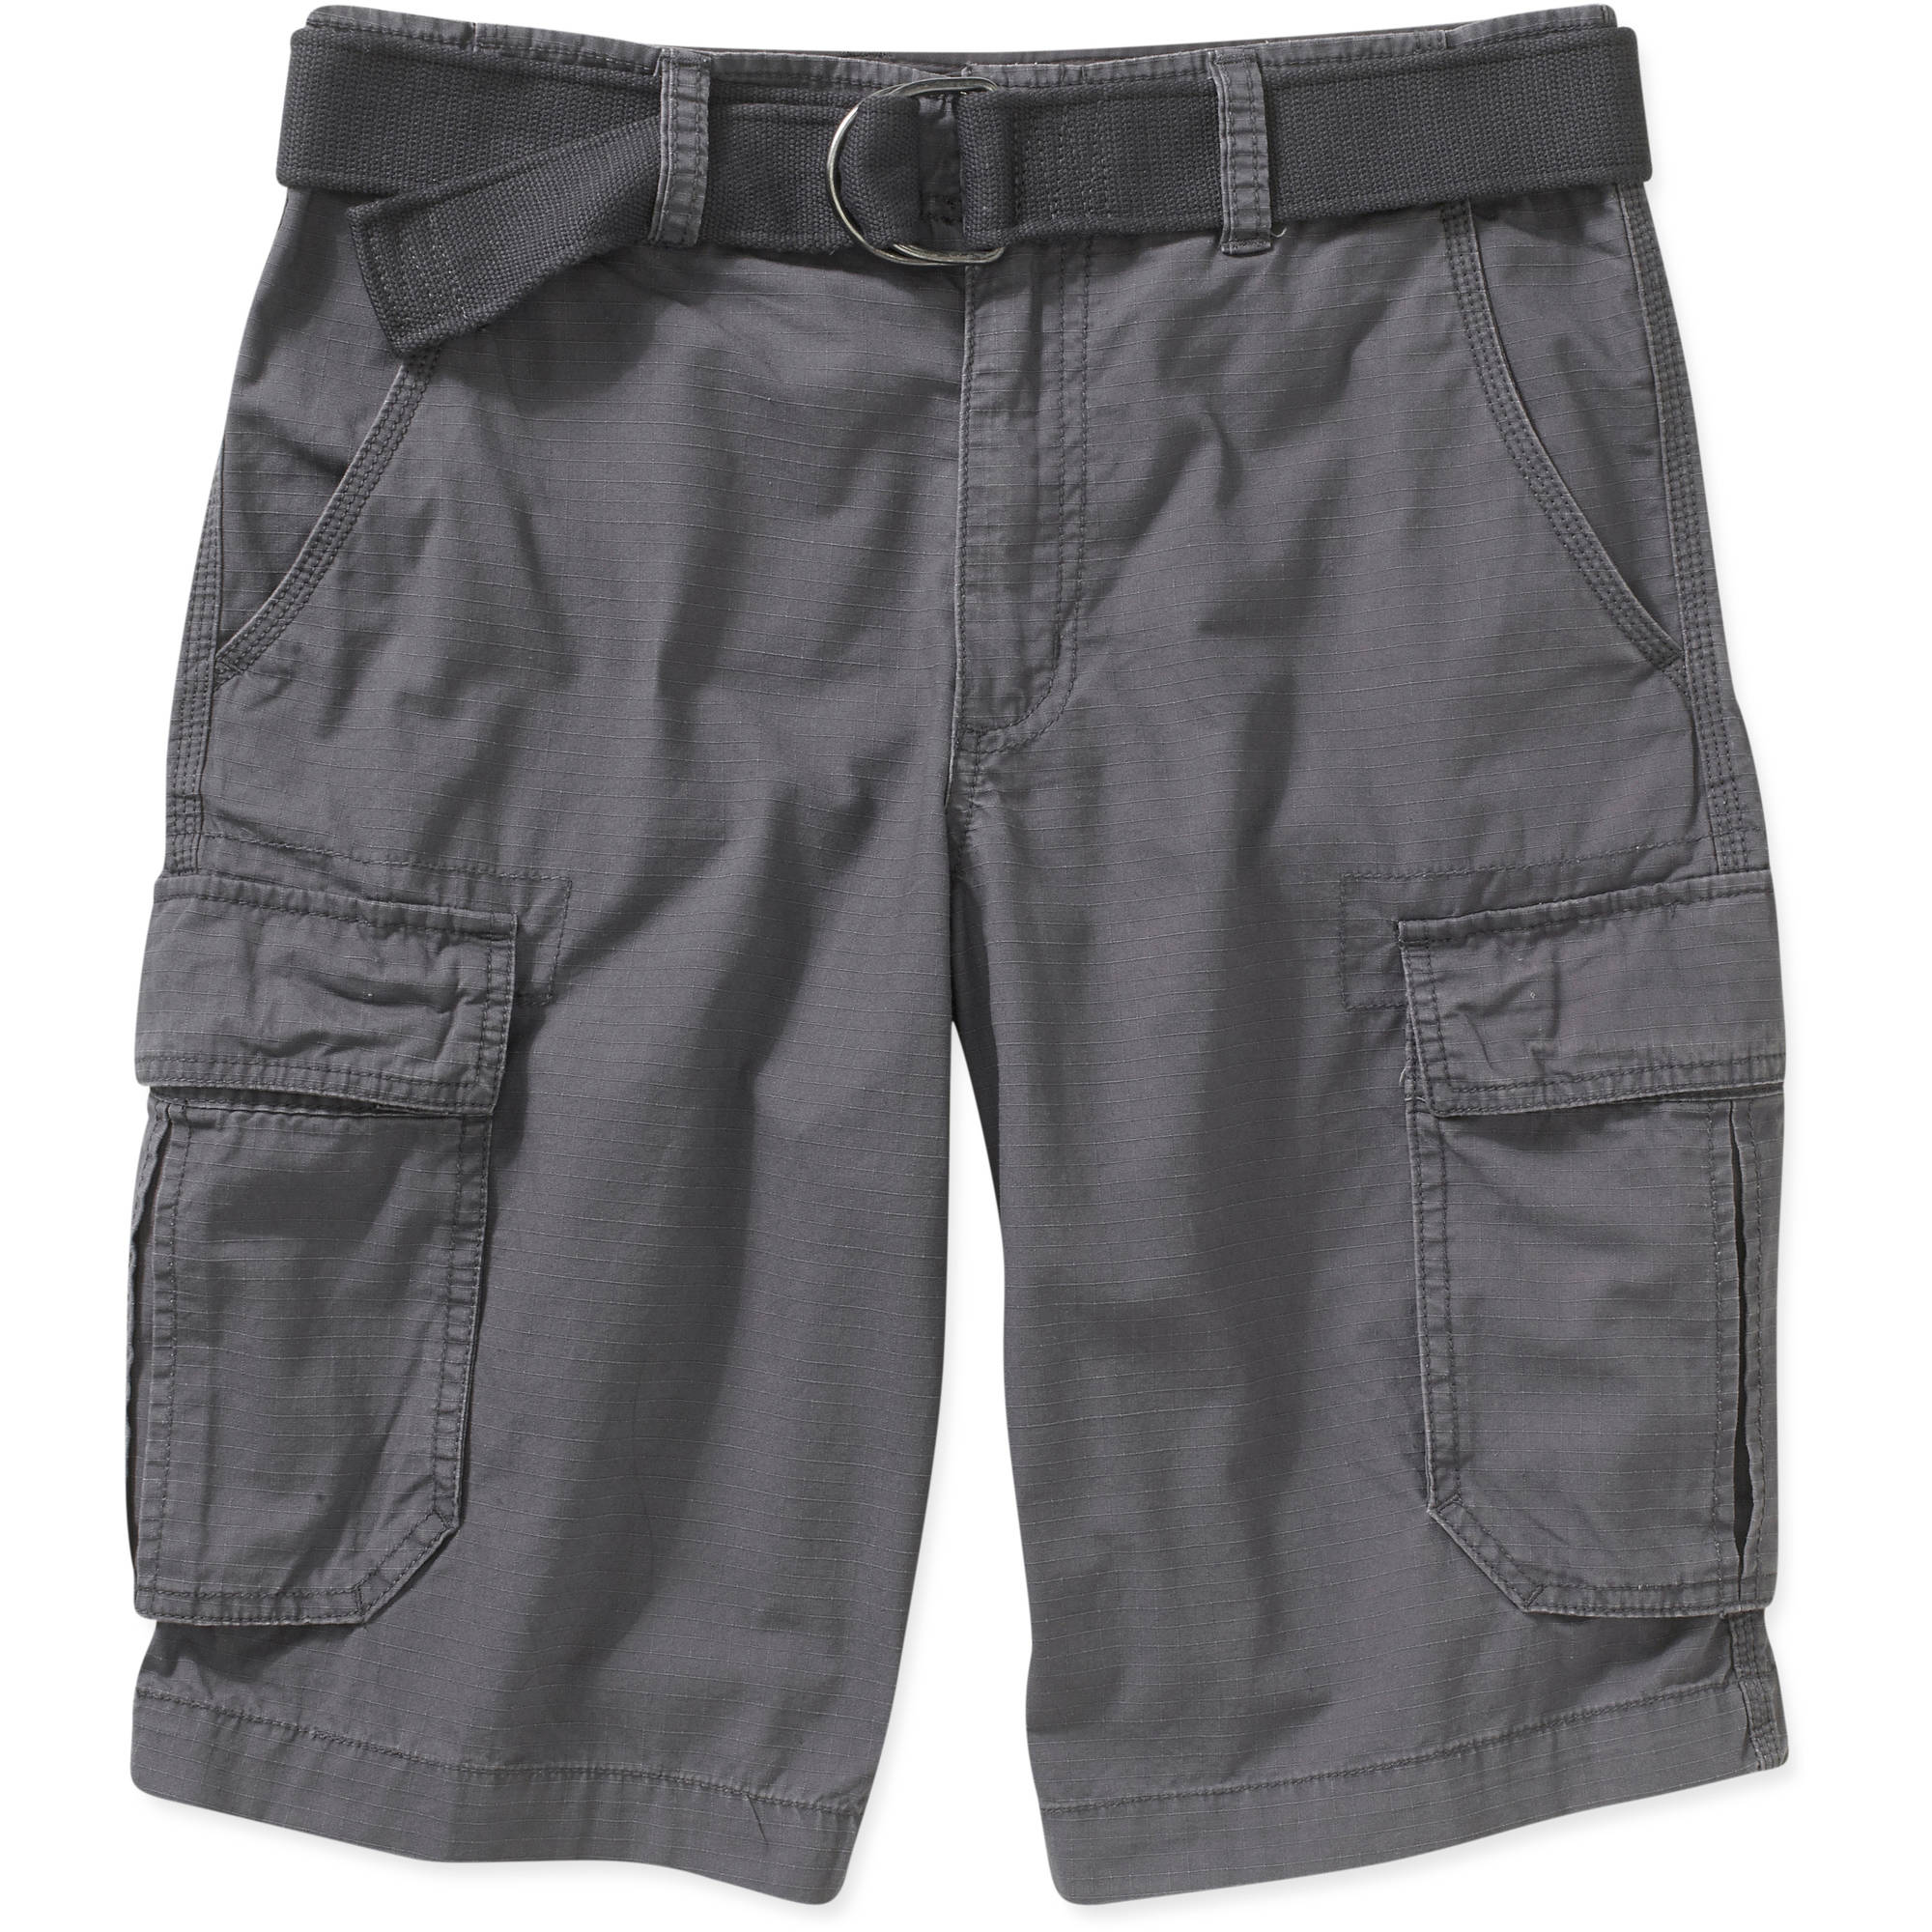 No Boundaries Men's Ripstop Short